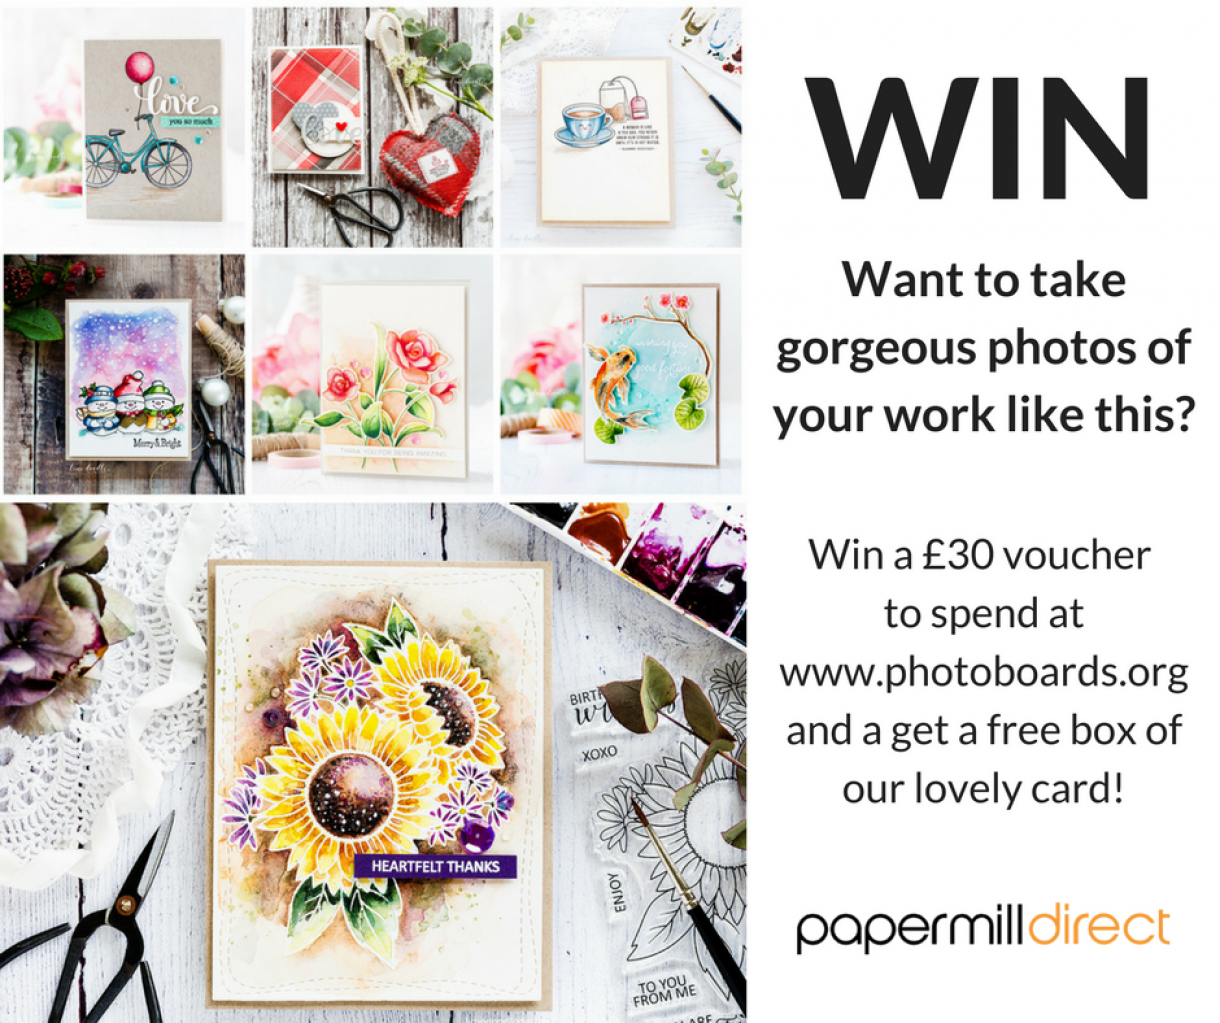 How To Photograph Cards And Stationery For Sharing Online Or Selling